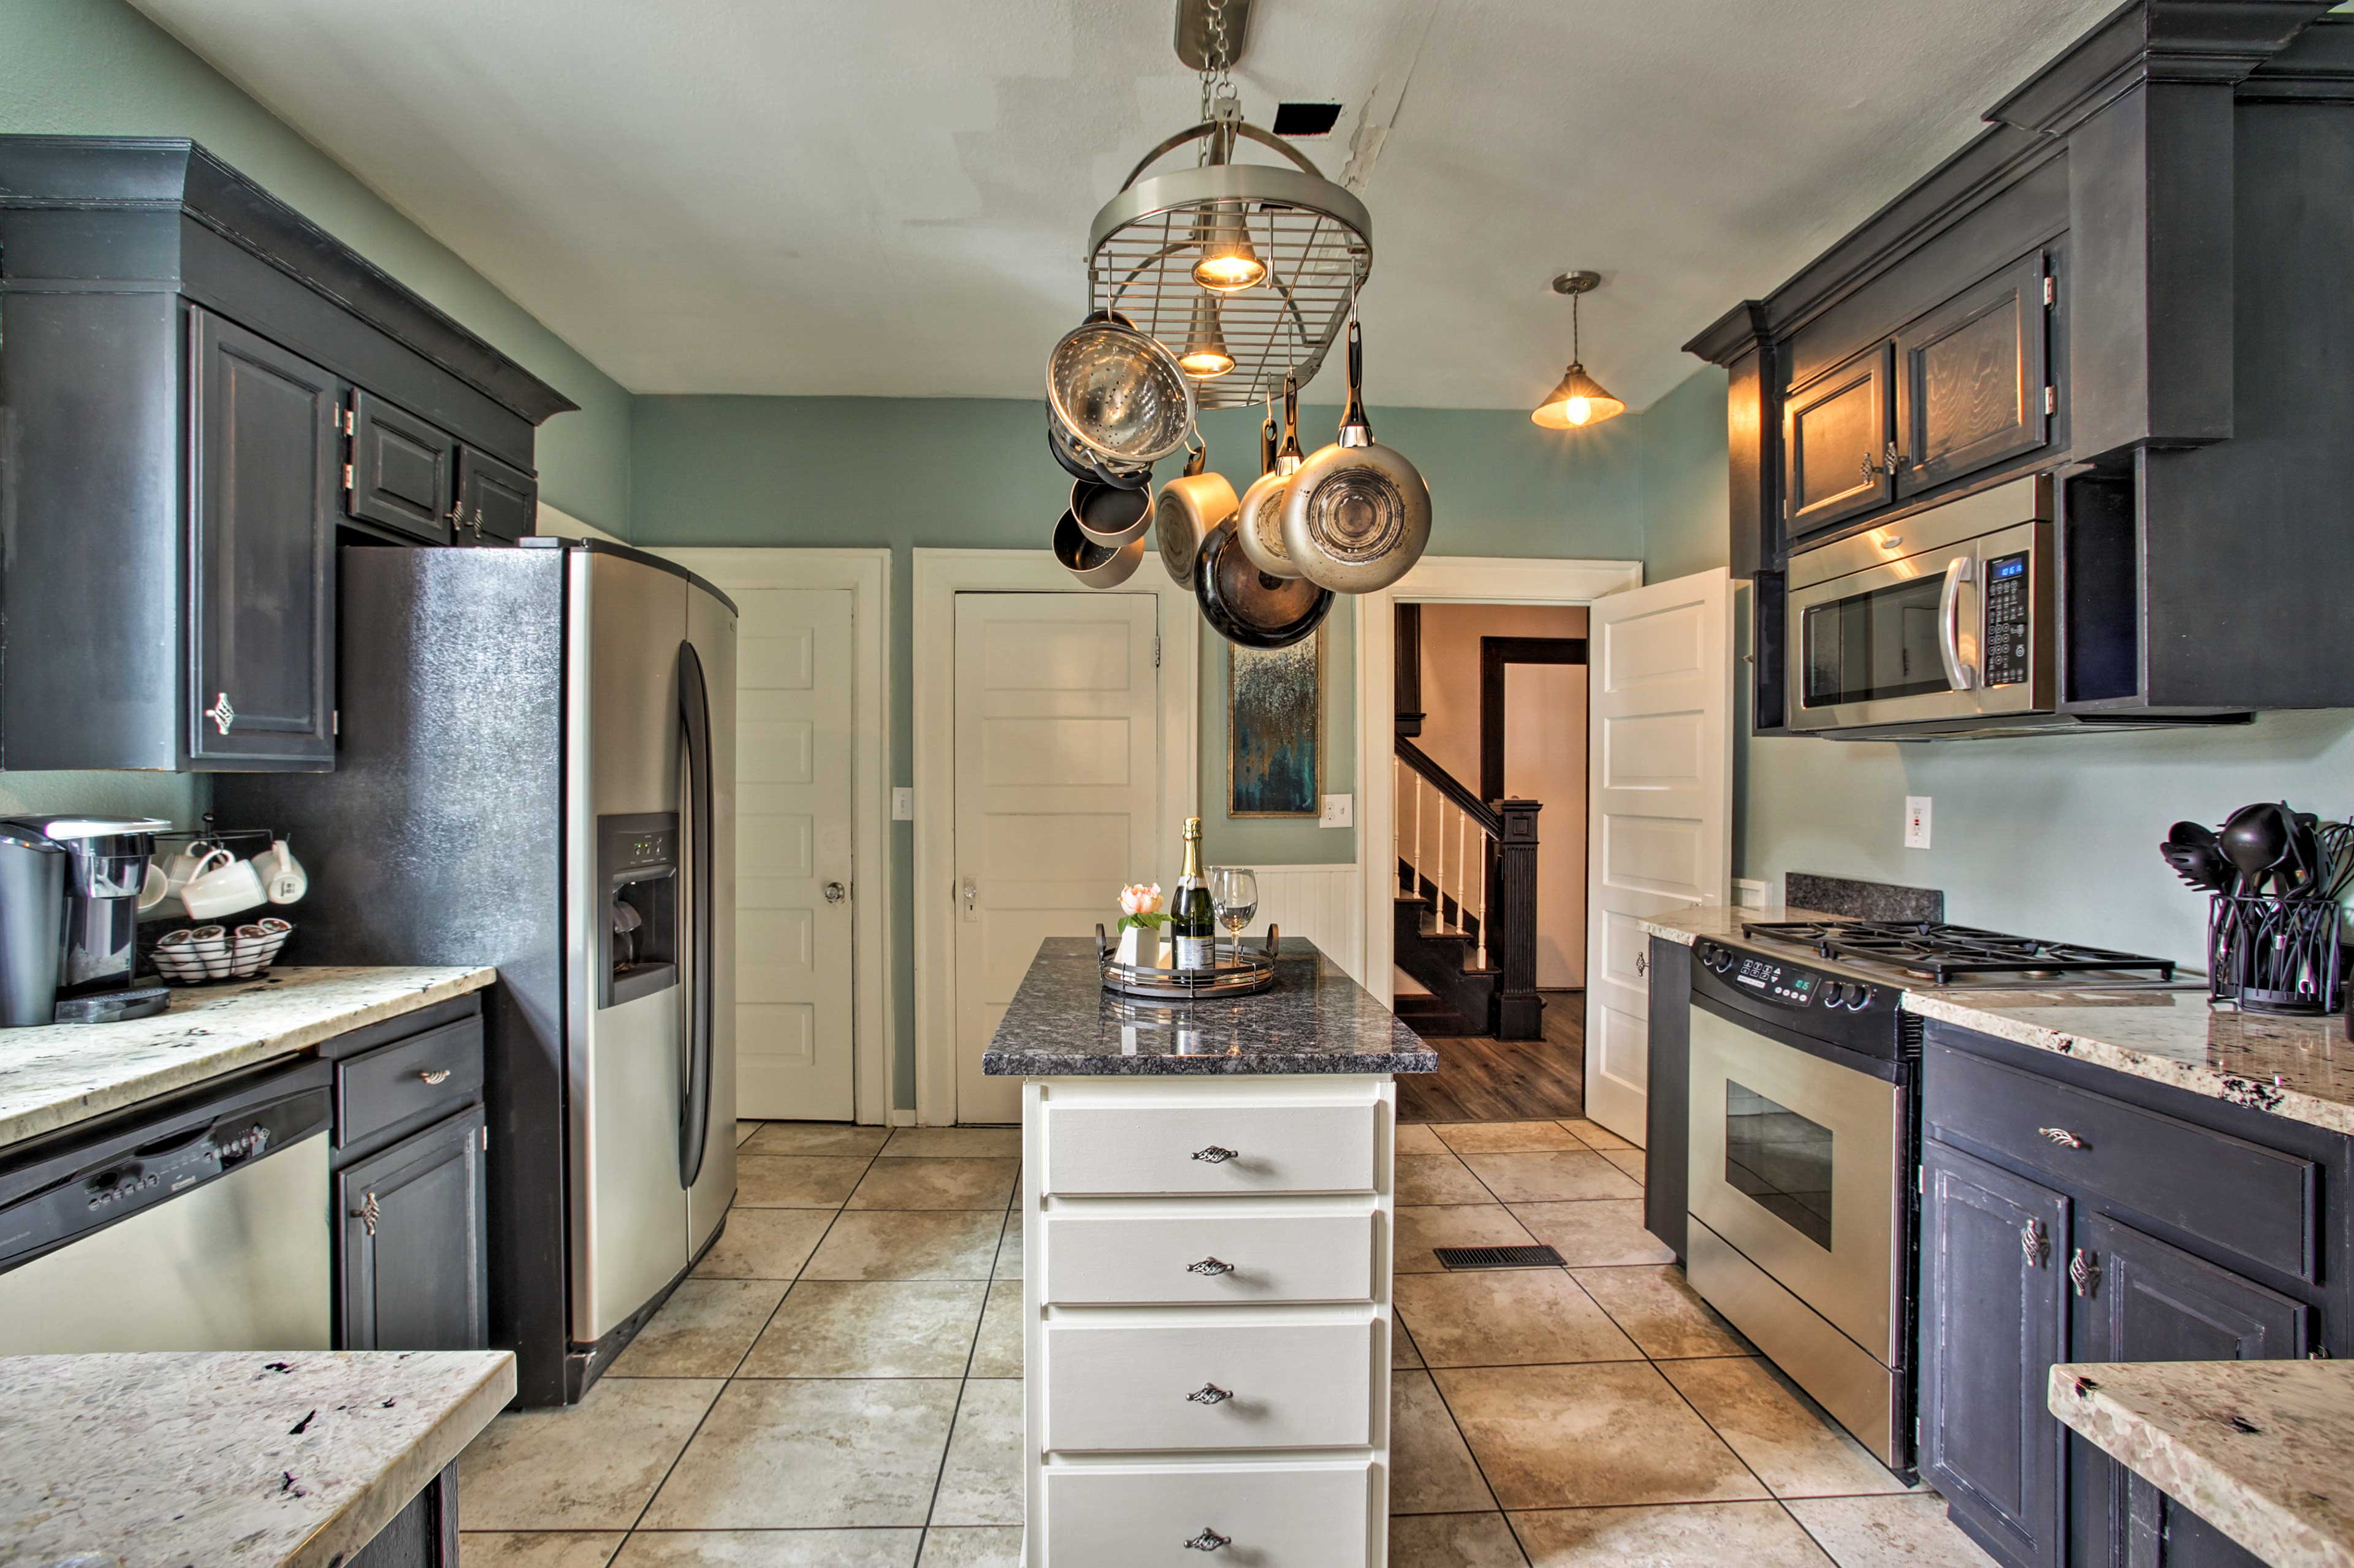 The kitchen is sure to please any chef!